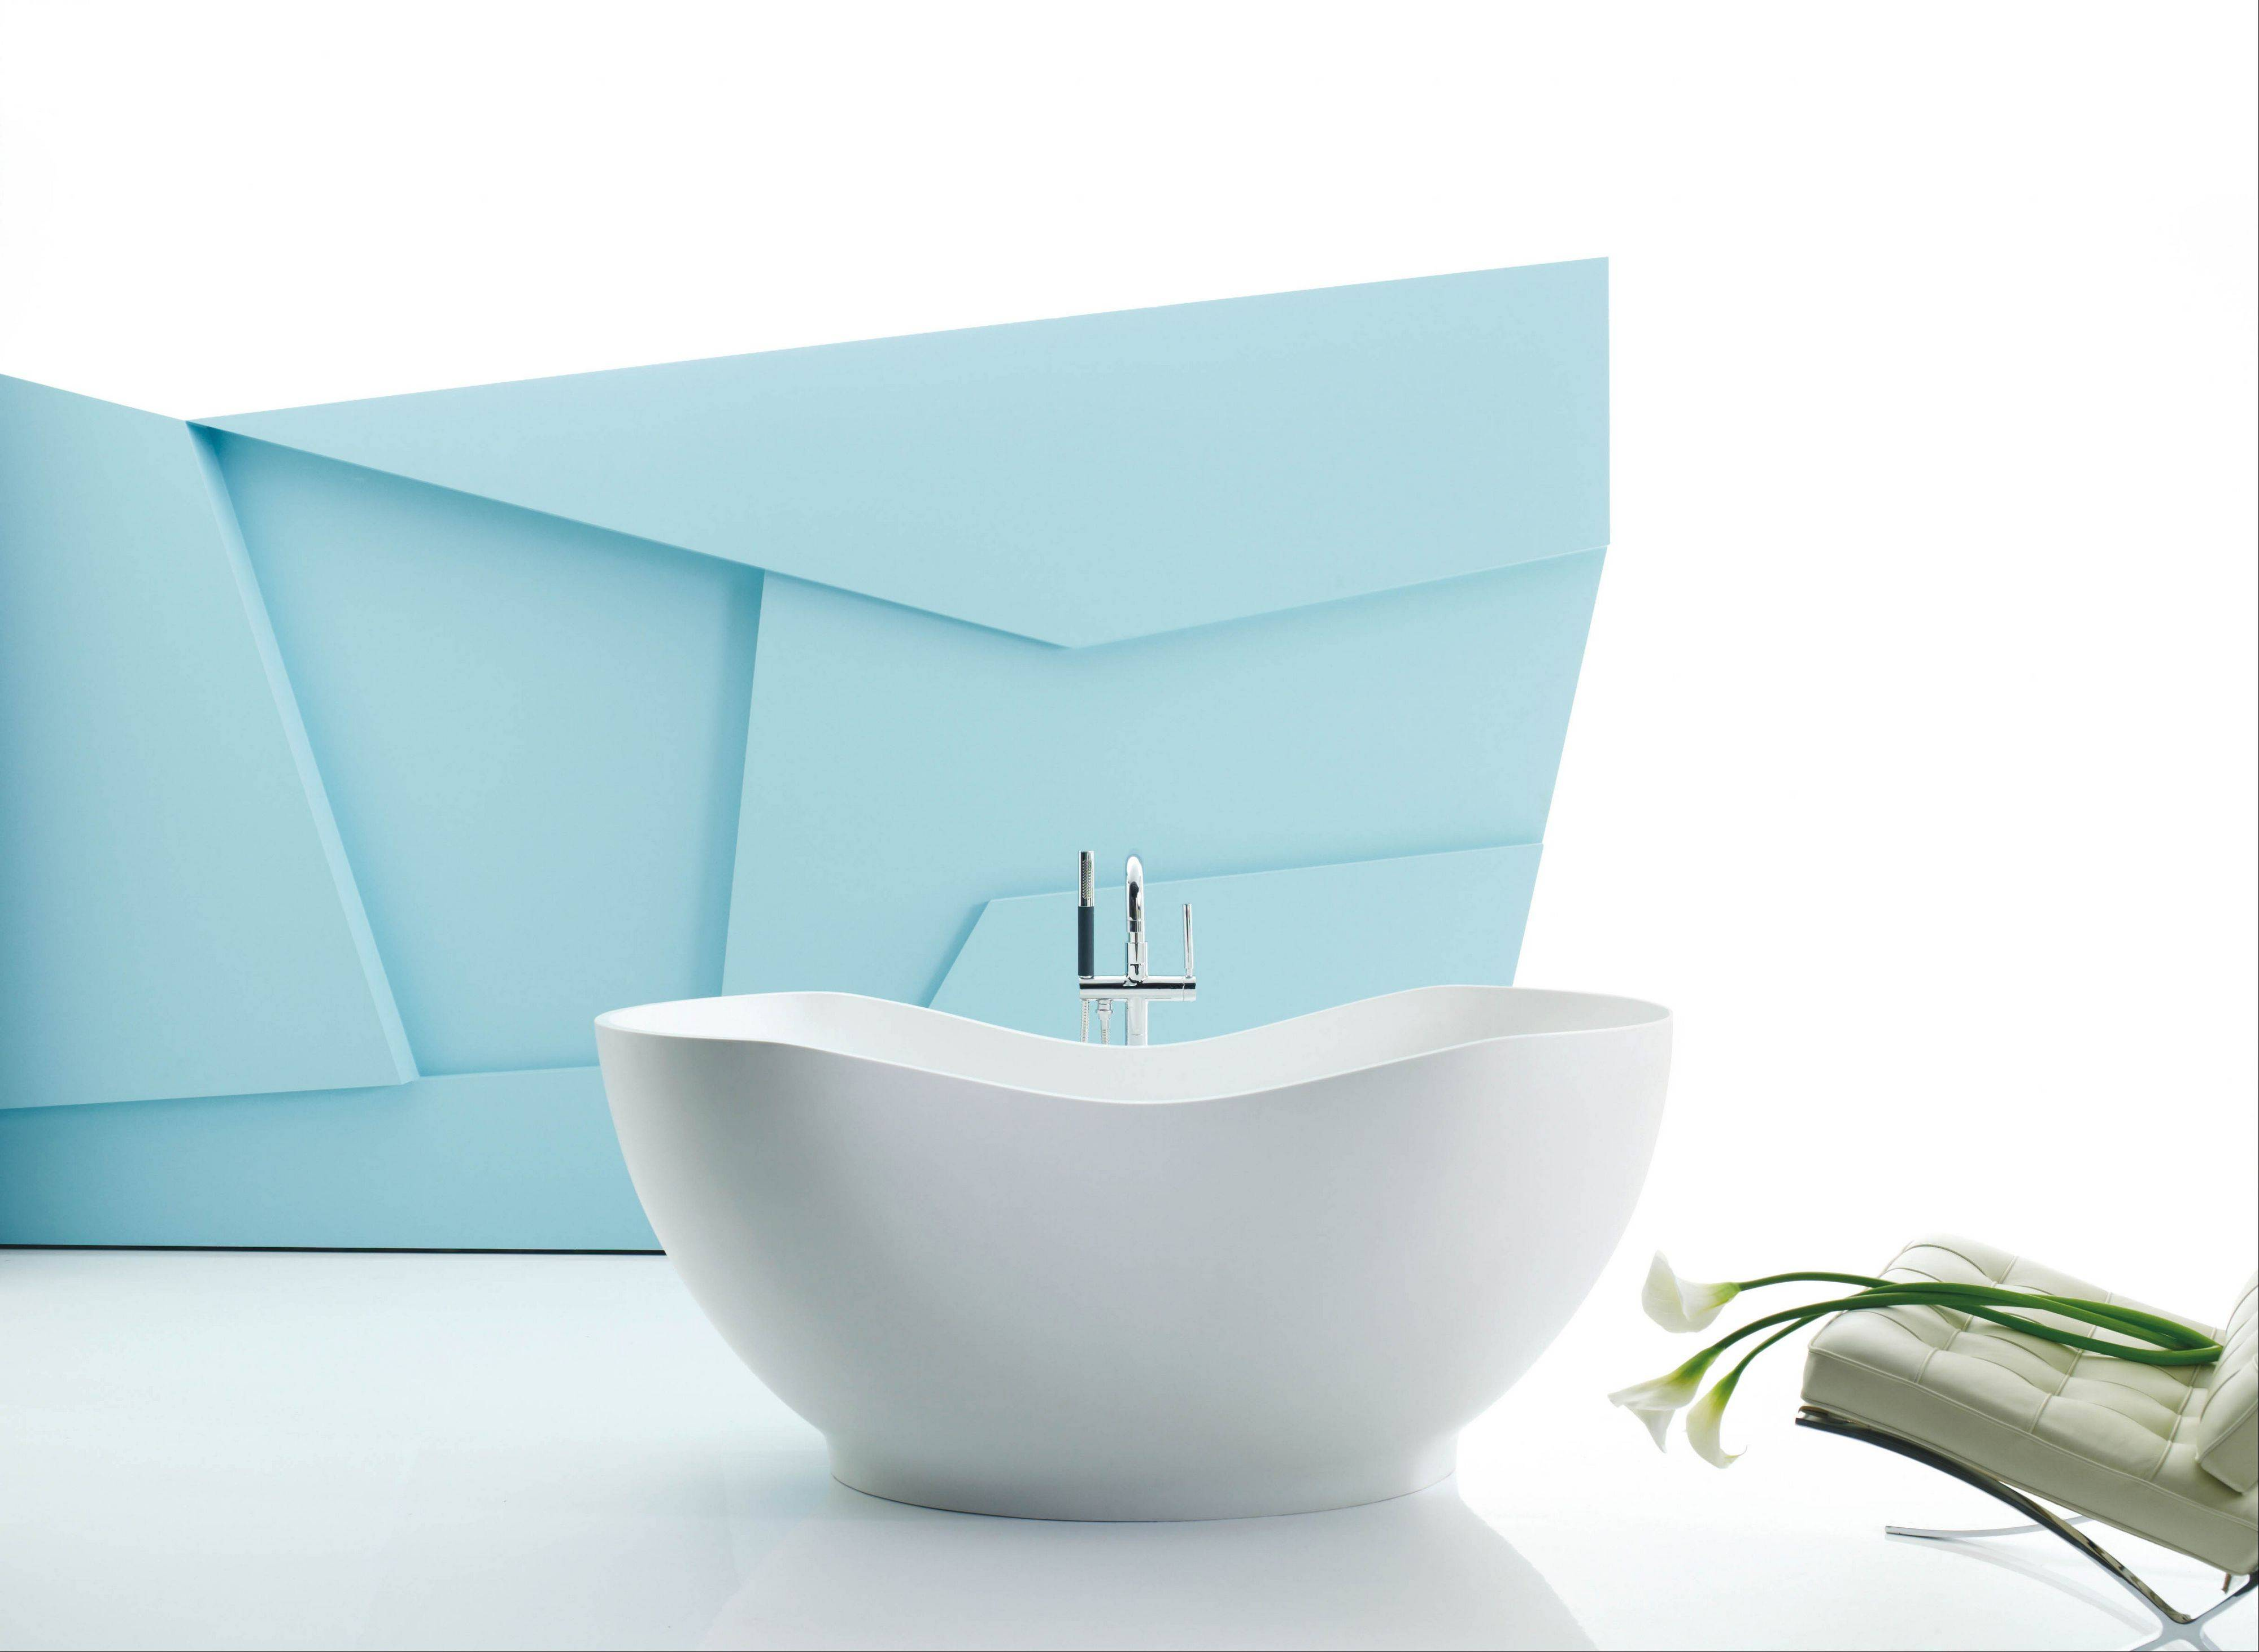 Free-standing baths are self-supporting bath tubs that are finished on all sides with no need to add wood framing.